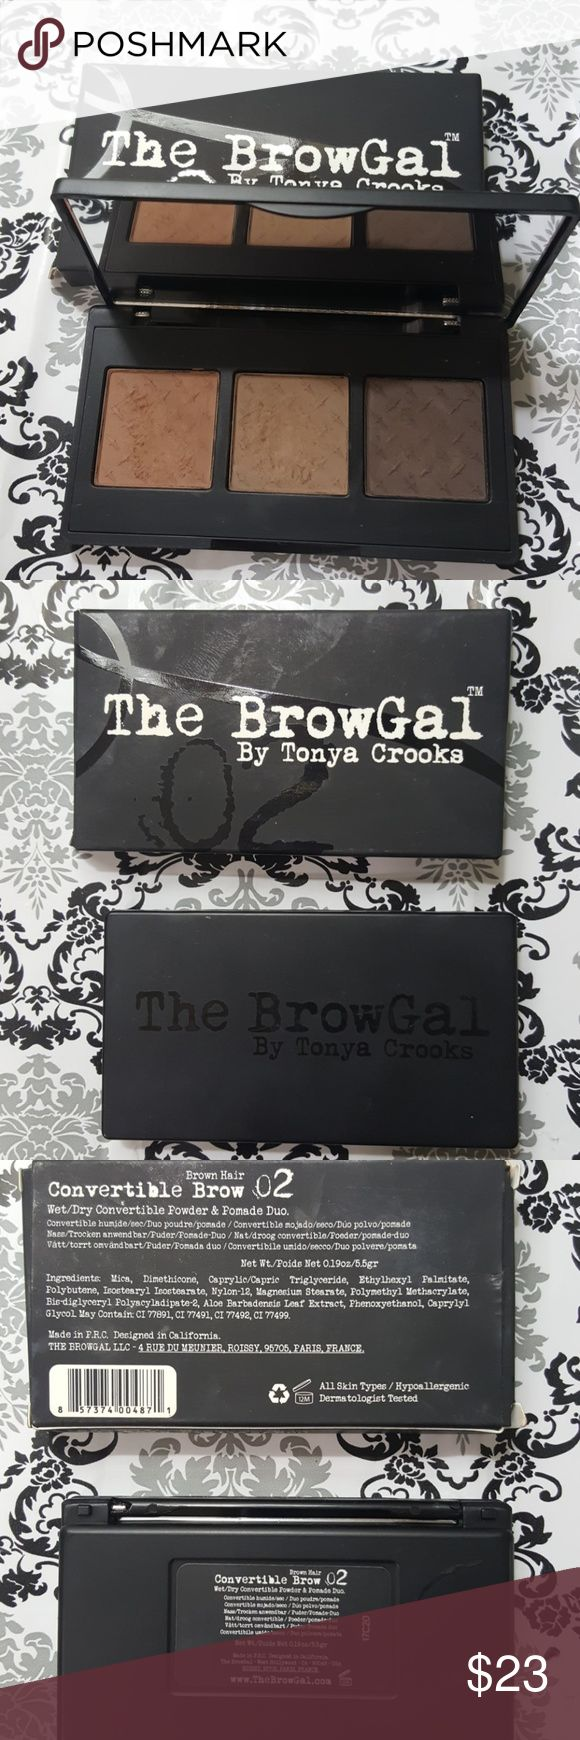 Tonya Crooks the browGal The browGal by Tonya Crooks  Wet dry convertible powder and Pomade Duo. Brown hair number two.  Swatched a few times. Box included. The compact plastic hinge is broken. Literally just happened as I was taking the pictures!! 🤦‍♀️😣  It's a great product. I just have a lot of brow stuff.  ✌️💕🙏 the browGal Makeup Eyebrow Filler